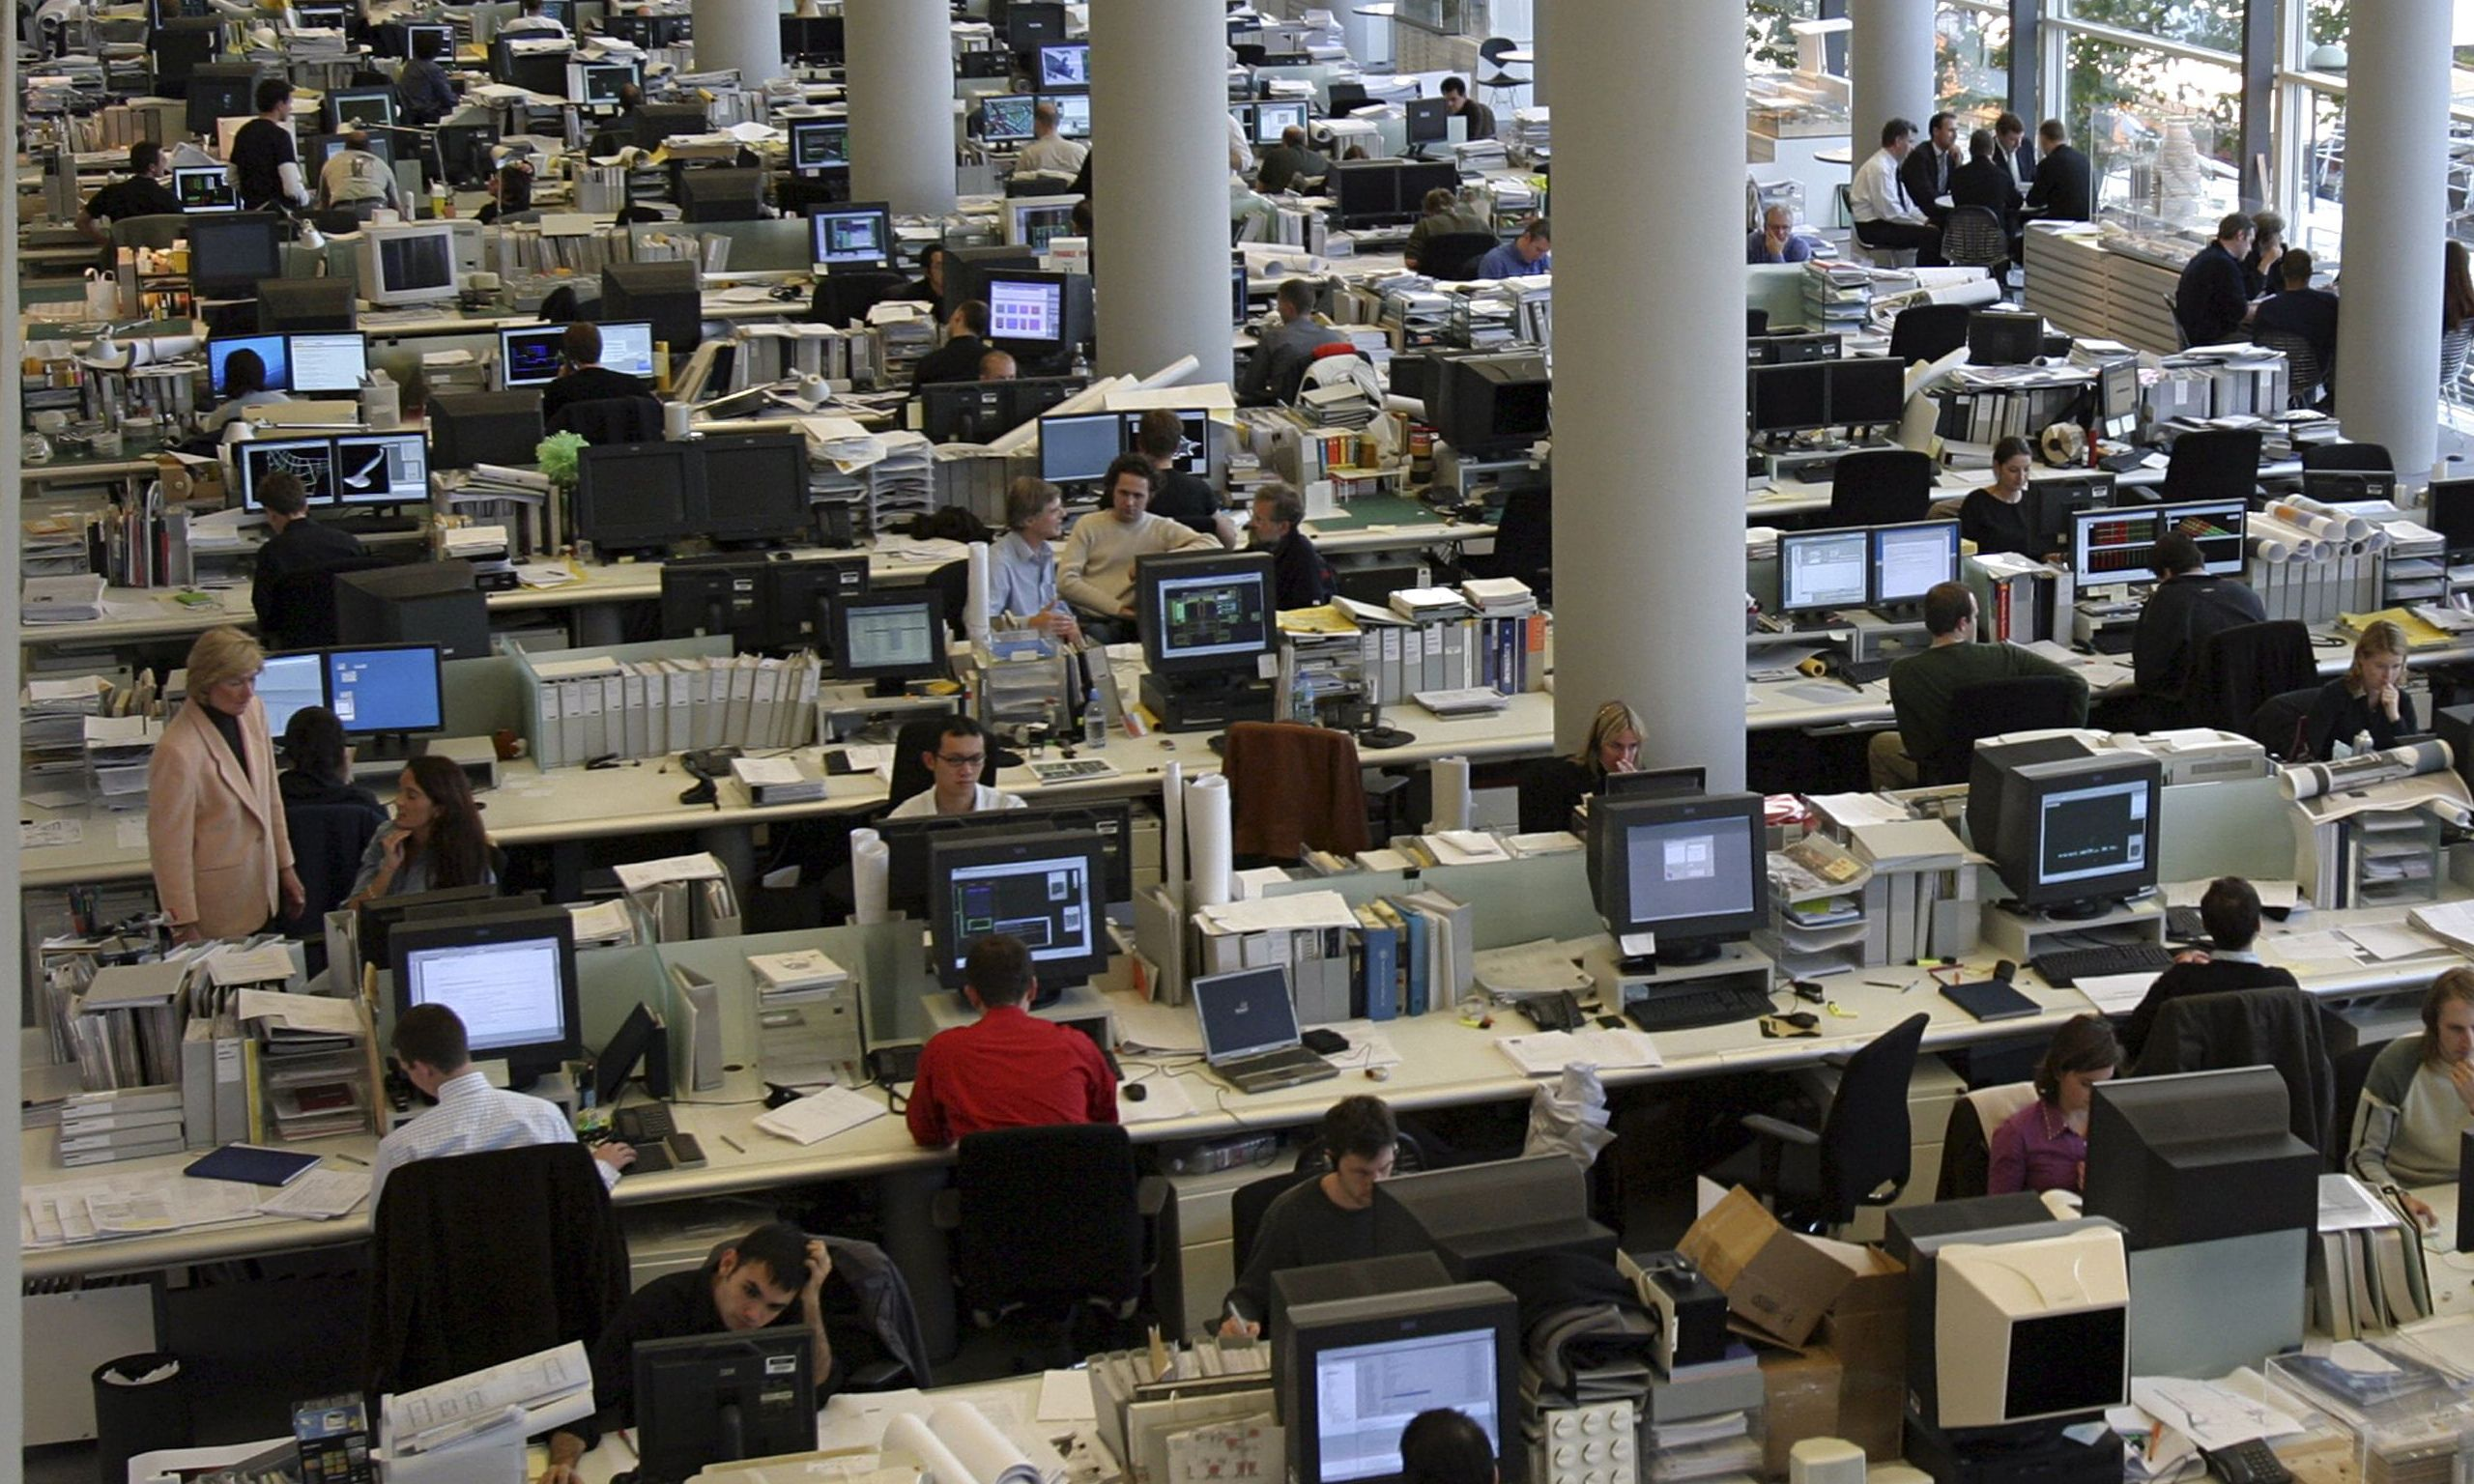 Why The Open Office Makes You Distracted, Exhausted, And